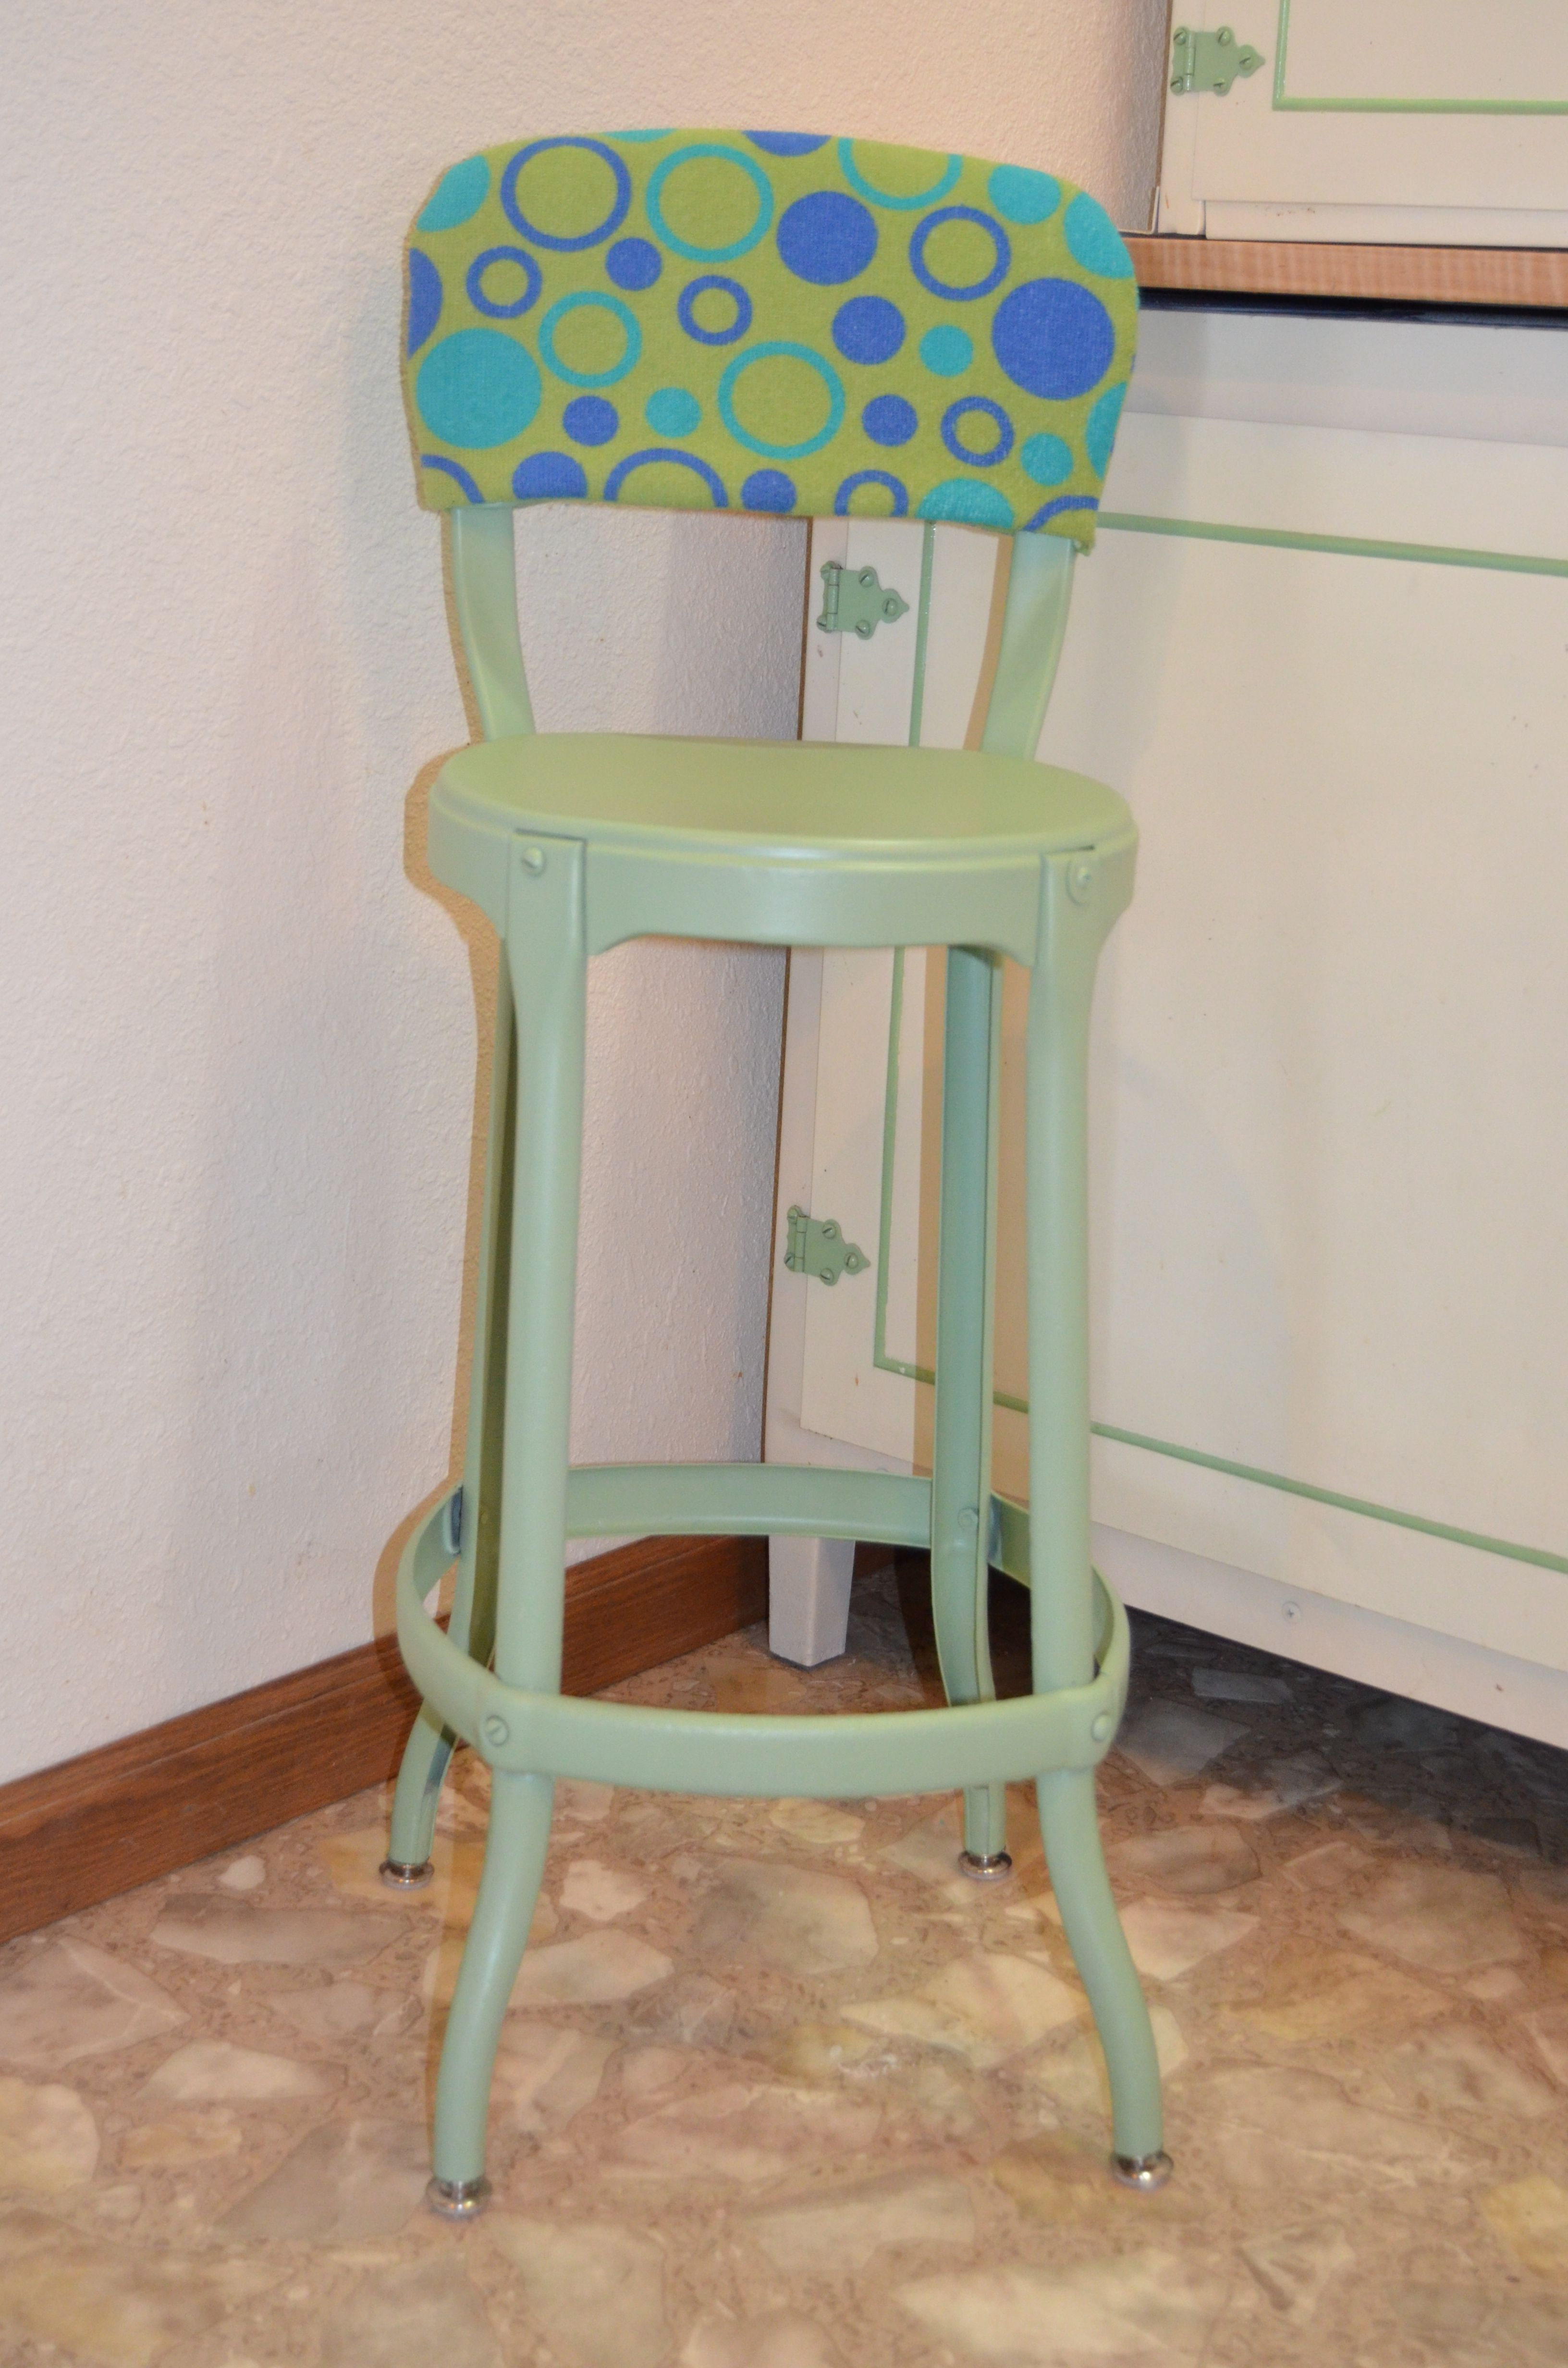 Outstanding 3 Metal Kitchen Stool Redo From A Rusted Old Metal Stool To Machost Co Dining Chair Design Ideas Machostcouk